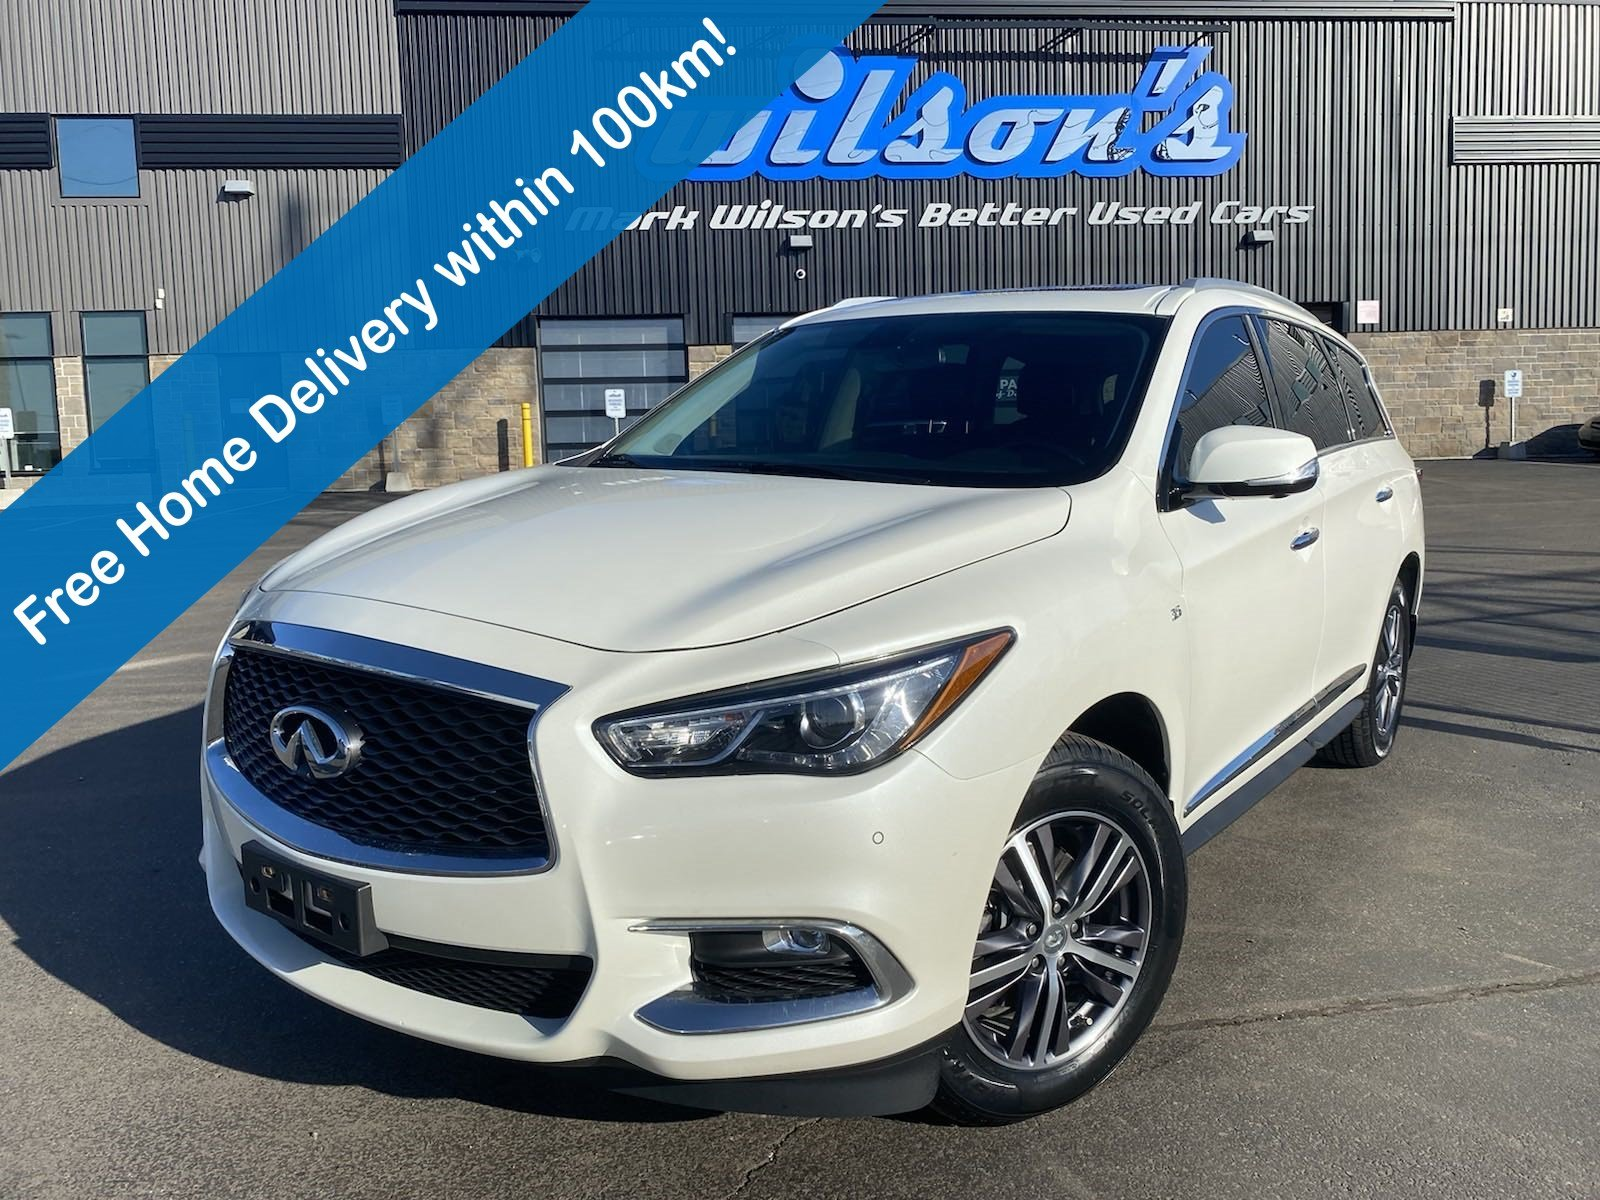 Certified Pre-Owned 2018 INFINITI QX60 Leather, Sunroof, Navigation, New Tires, Heated + Memory Seat, 360 Camera, Heated Steering and more!